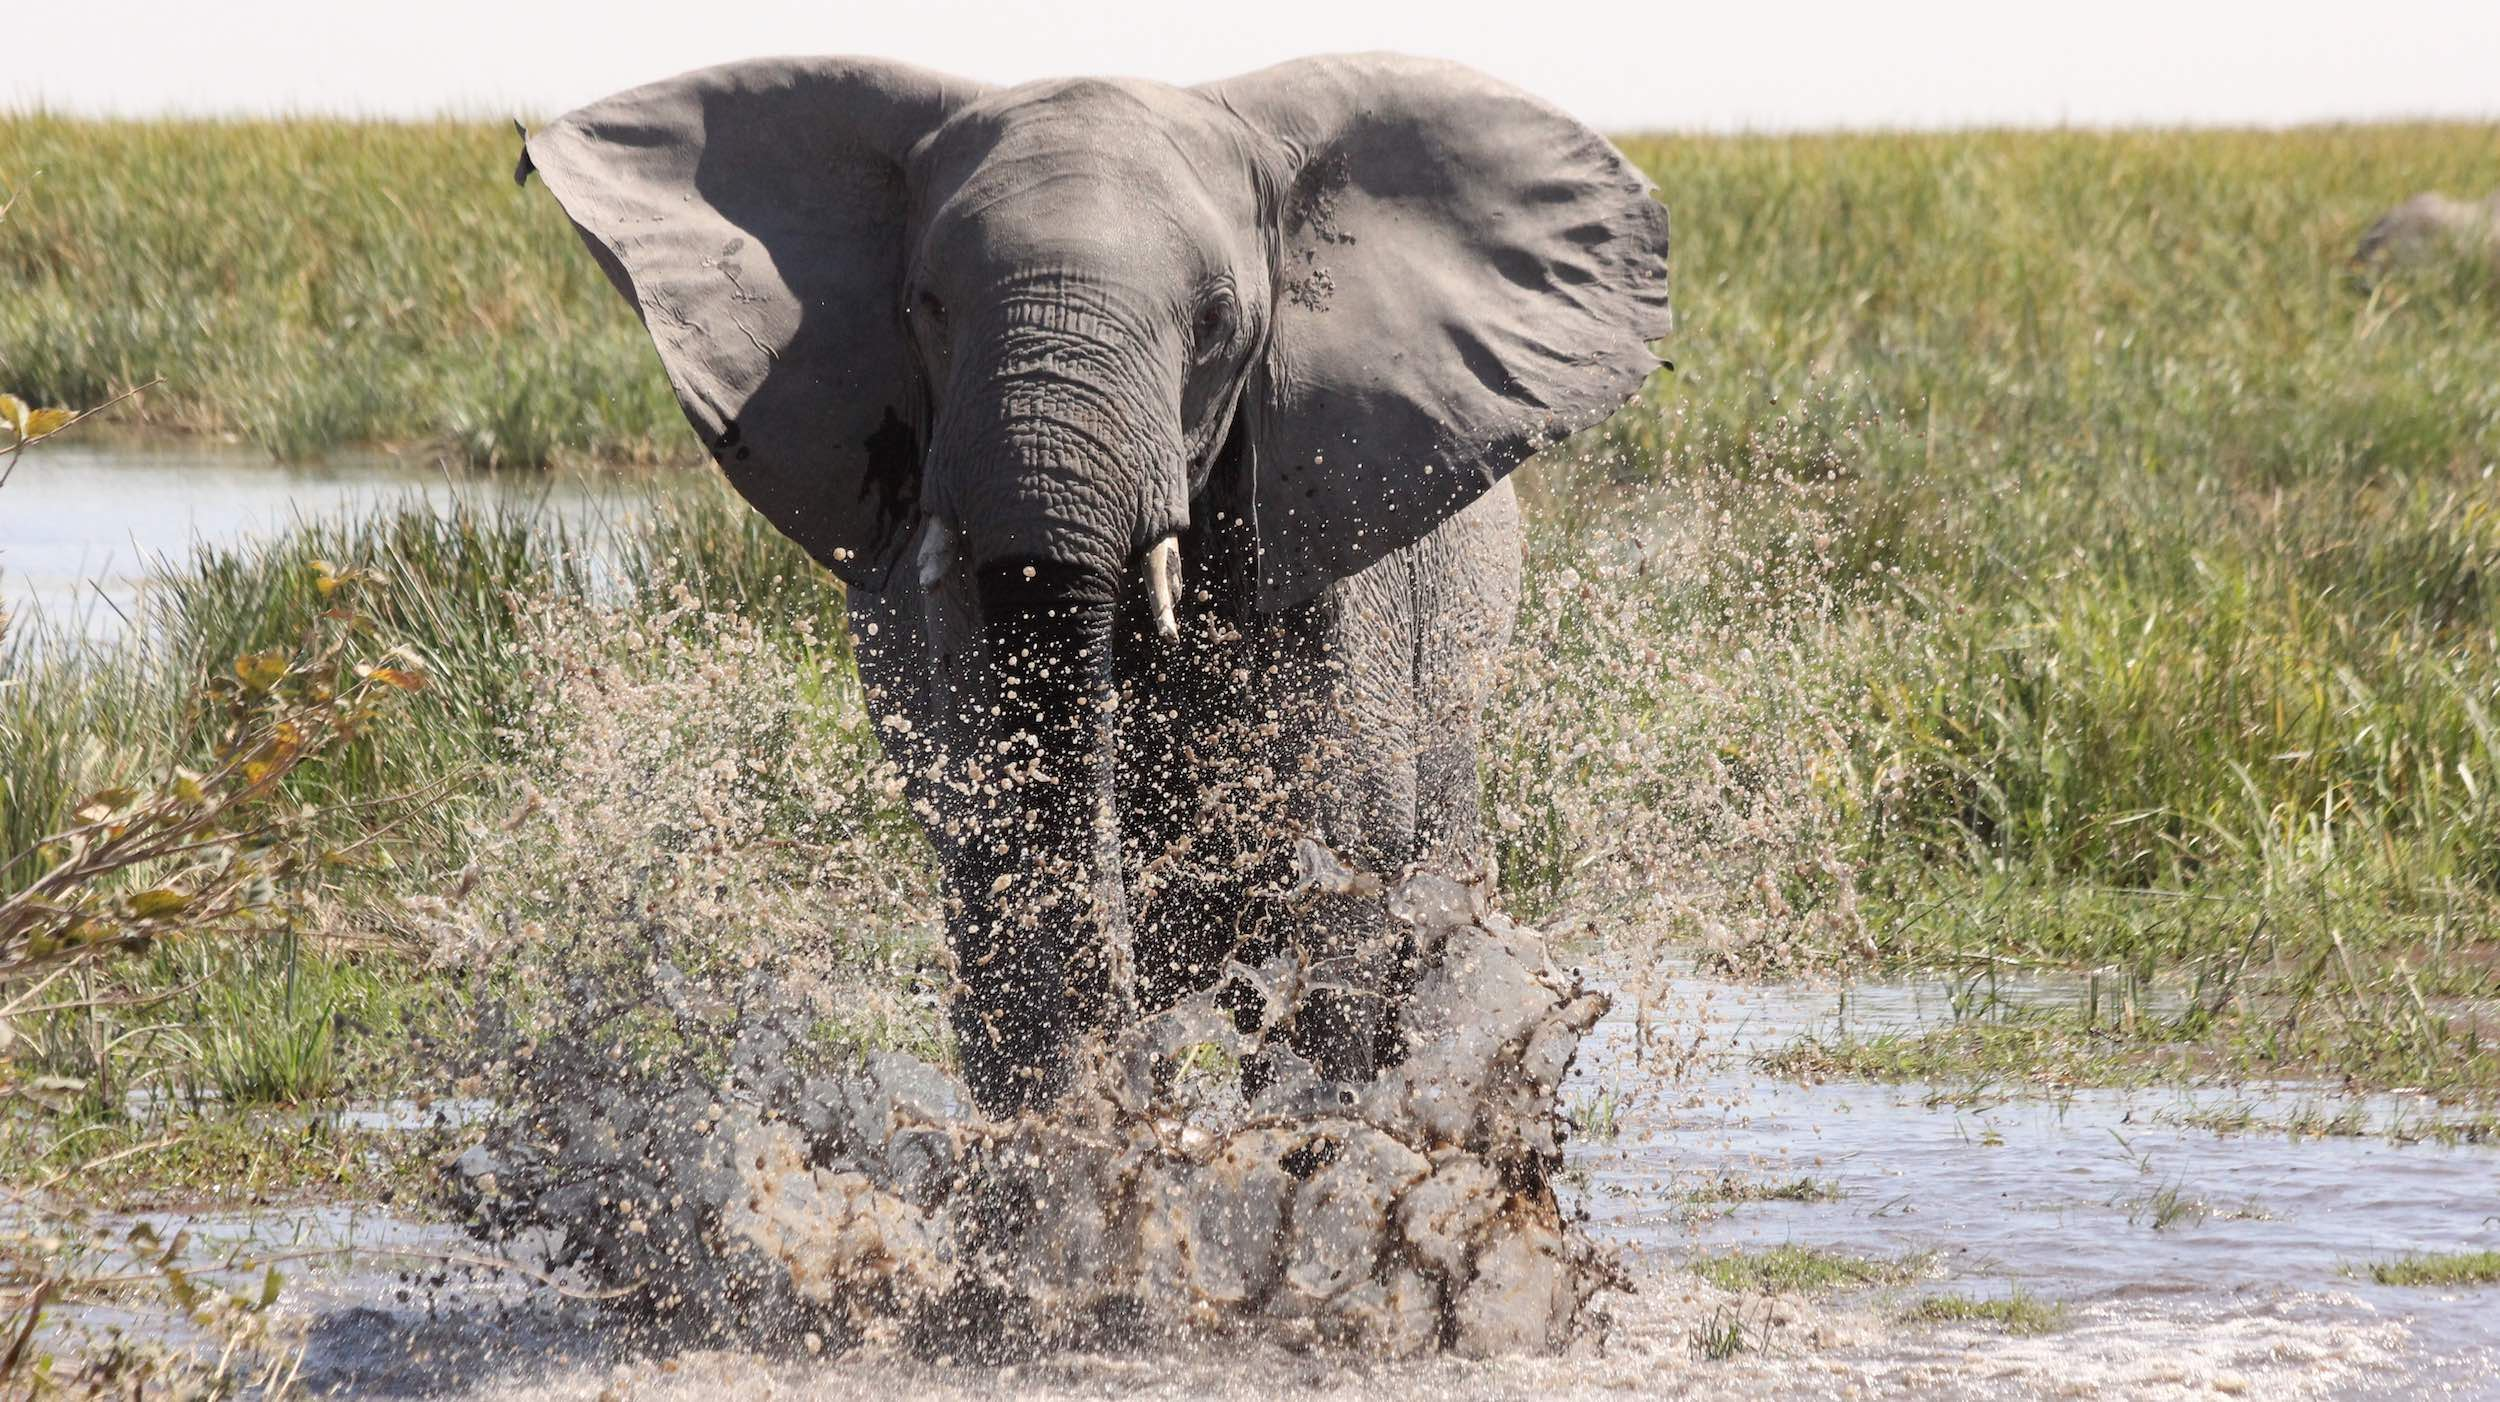 An elephant charges through a river towards the camera.